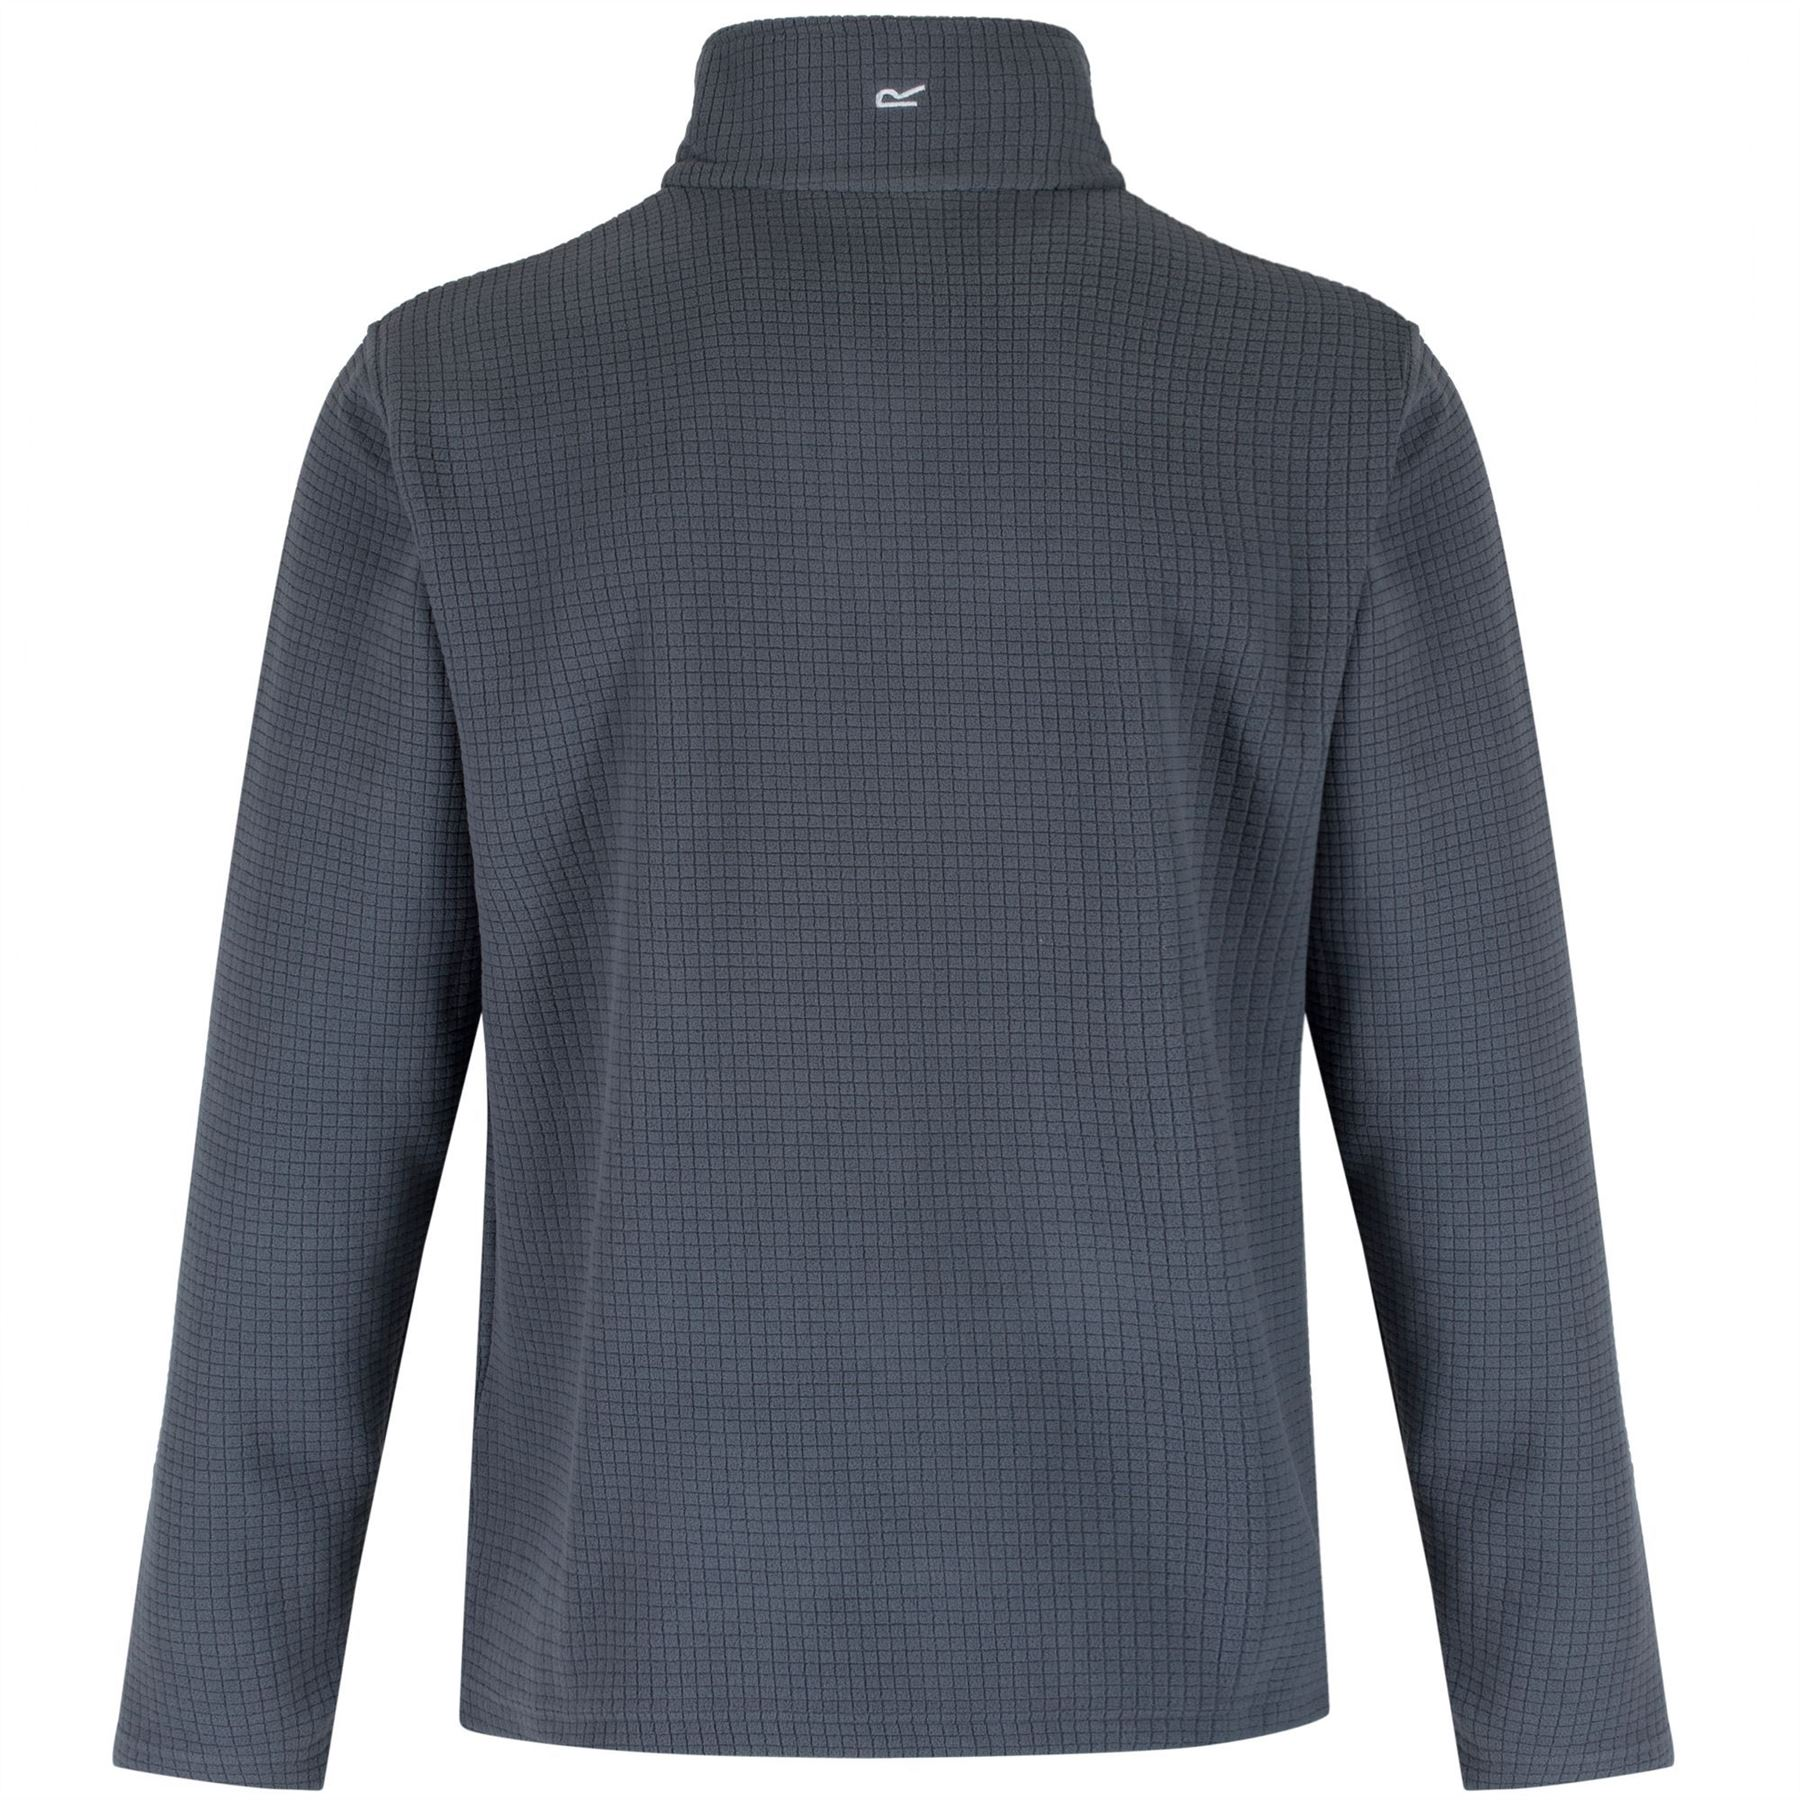 Regatta-Elgon-para-hombre-Half-Zip-Fleece-Pullover-Jumper-Top-RMA236 miniatura 22